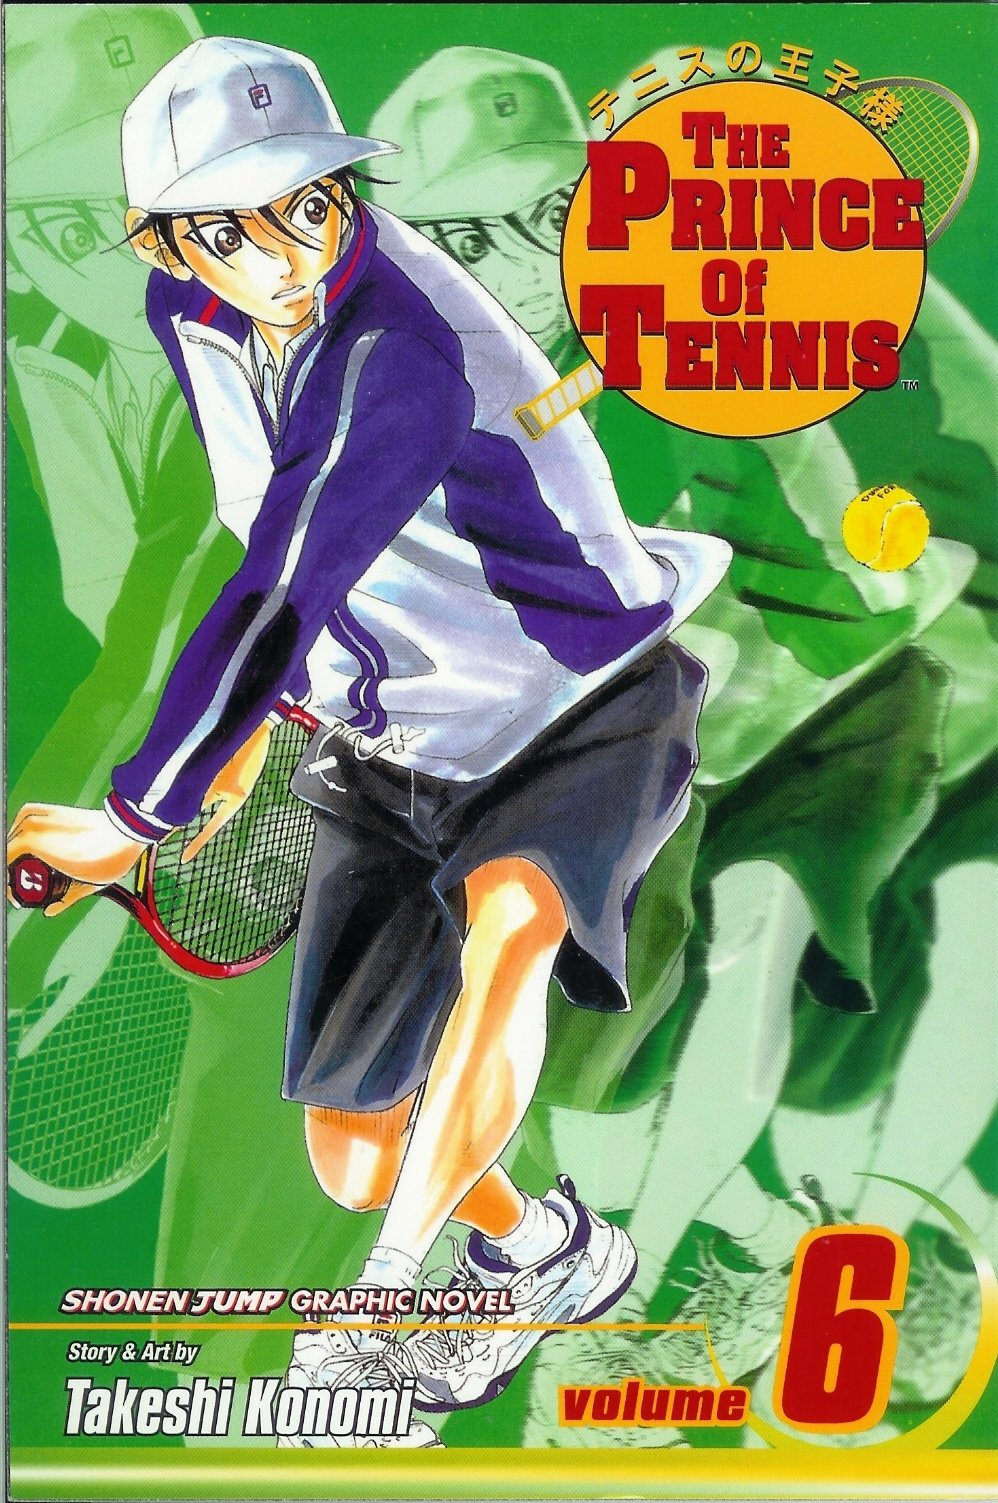 The Prince Of Tennis 6 (Volume 6 - Shonen Jump Graphic Novel MANGA) Paperback – 2005